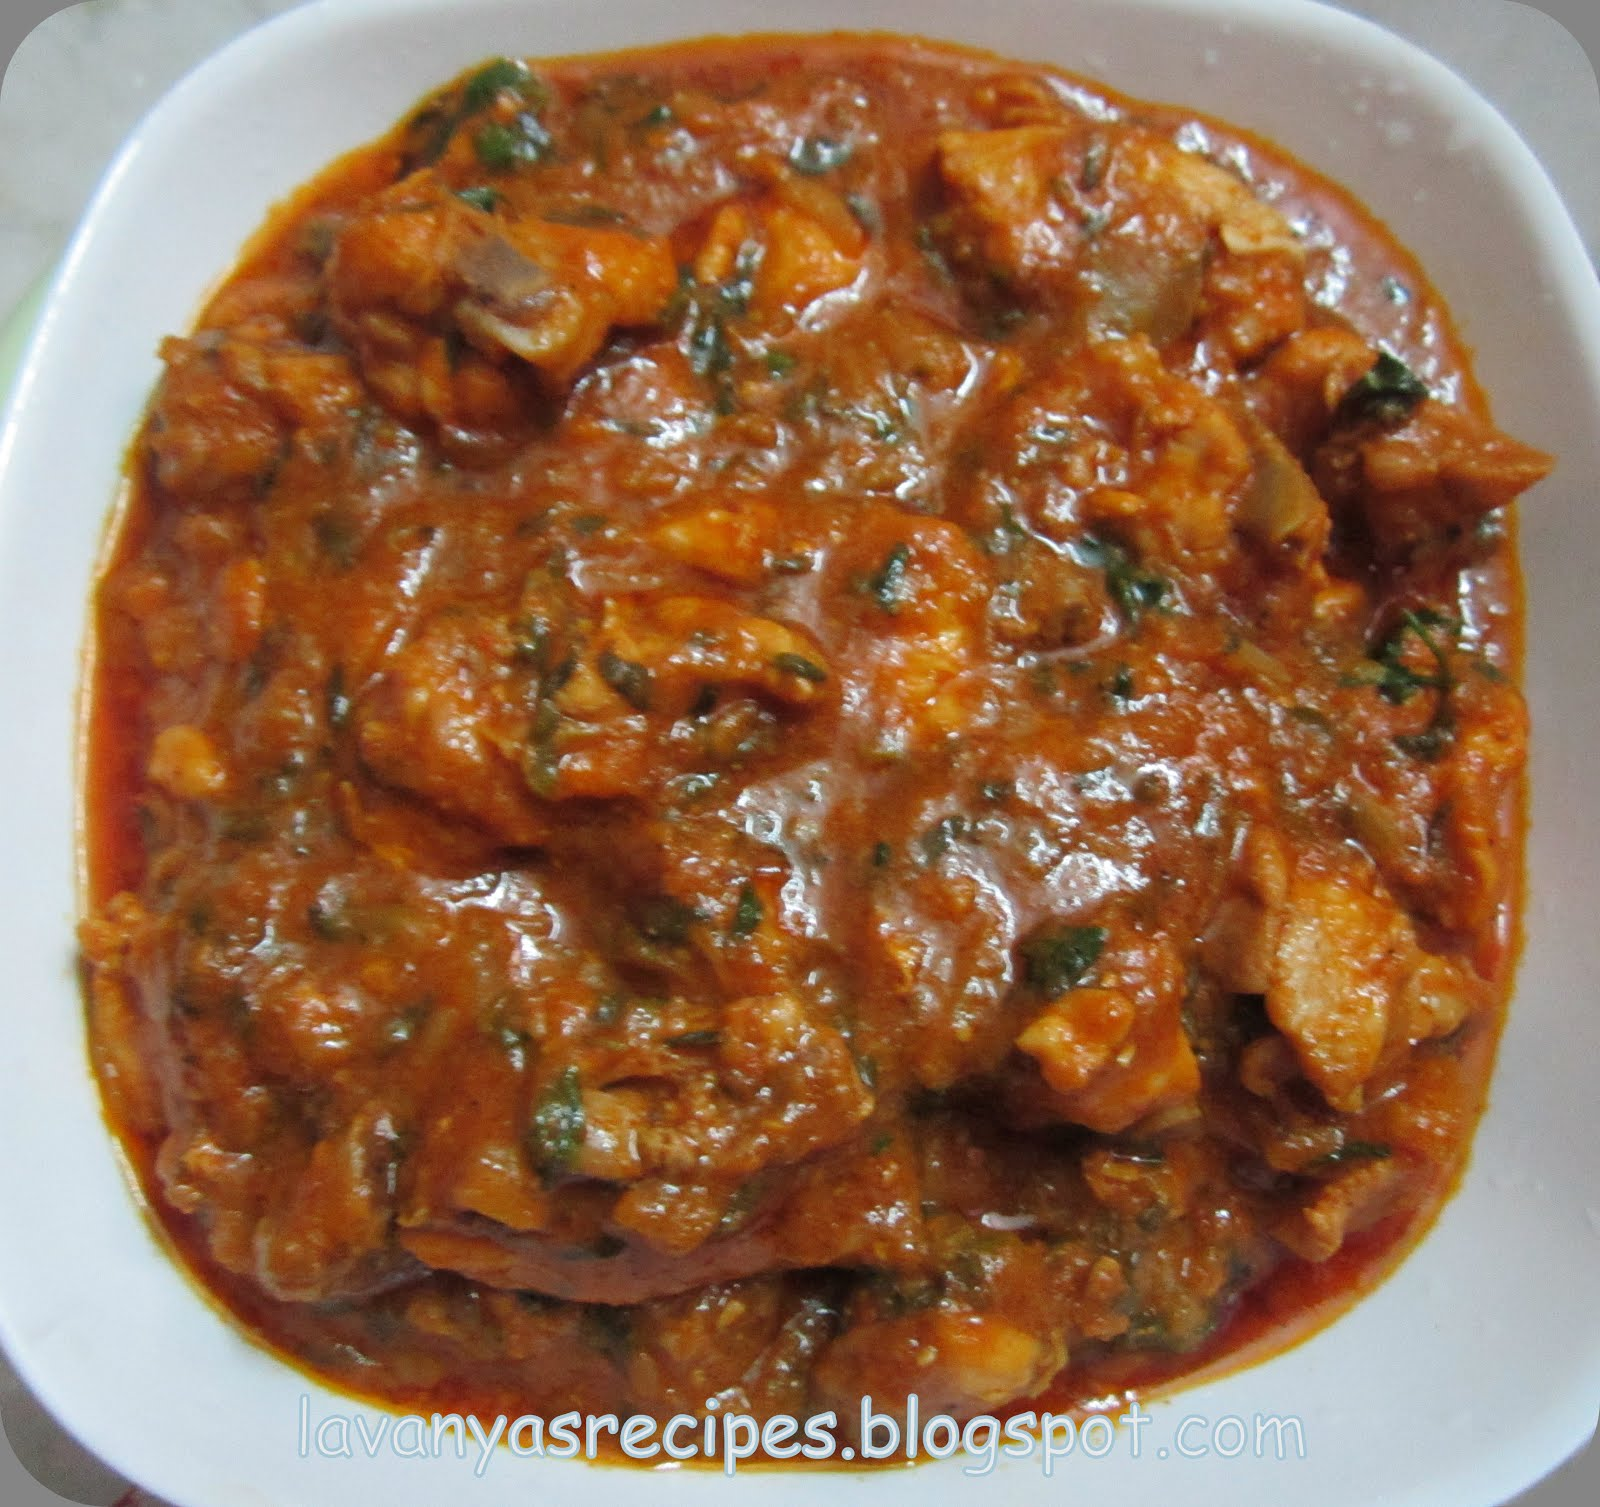 Download this Chicken Fenugreek Leaves Methi Murgh picture